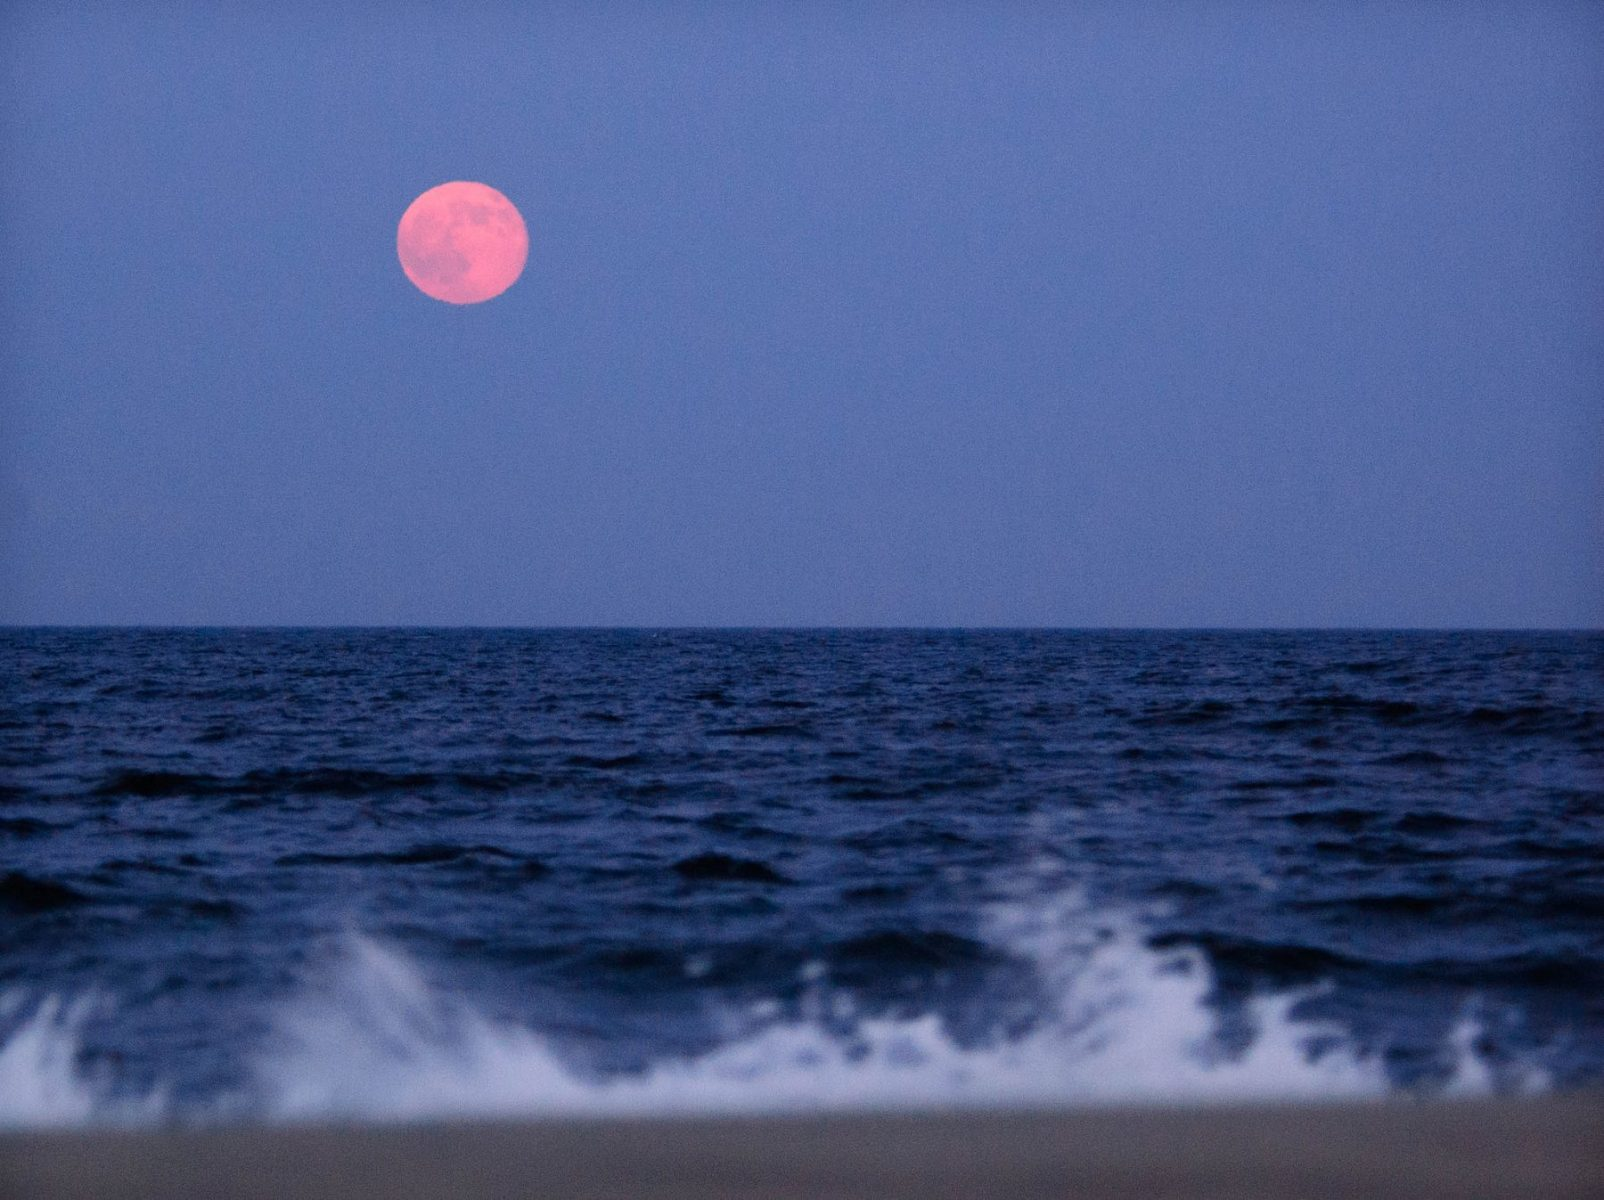 There's going to be a super rare 'strawberry moon' tonight